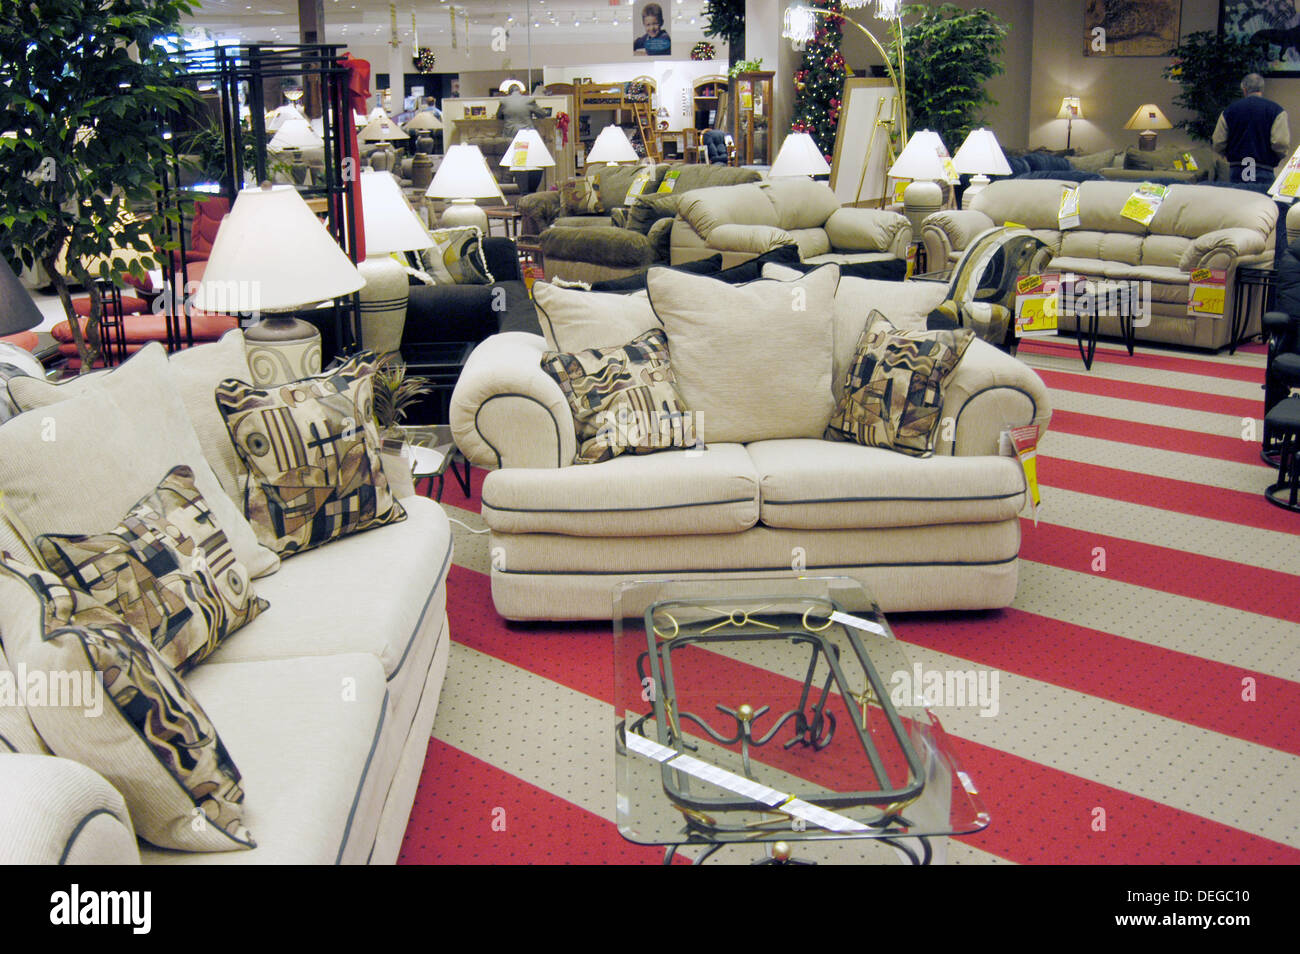 clearance center in furniture showroom stock image